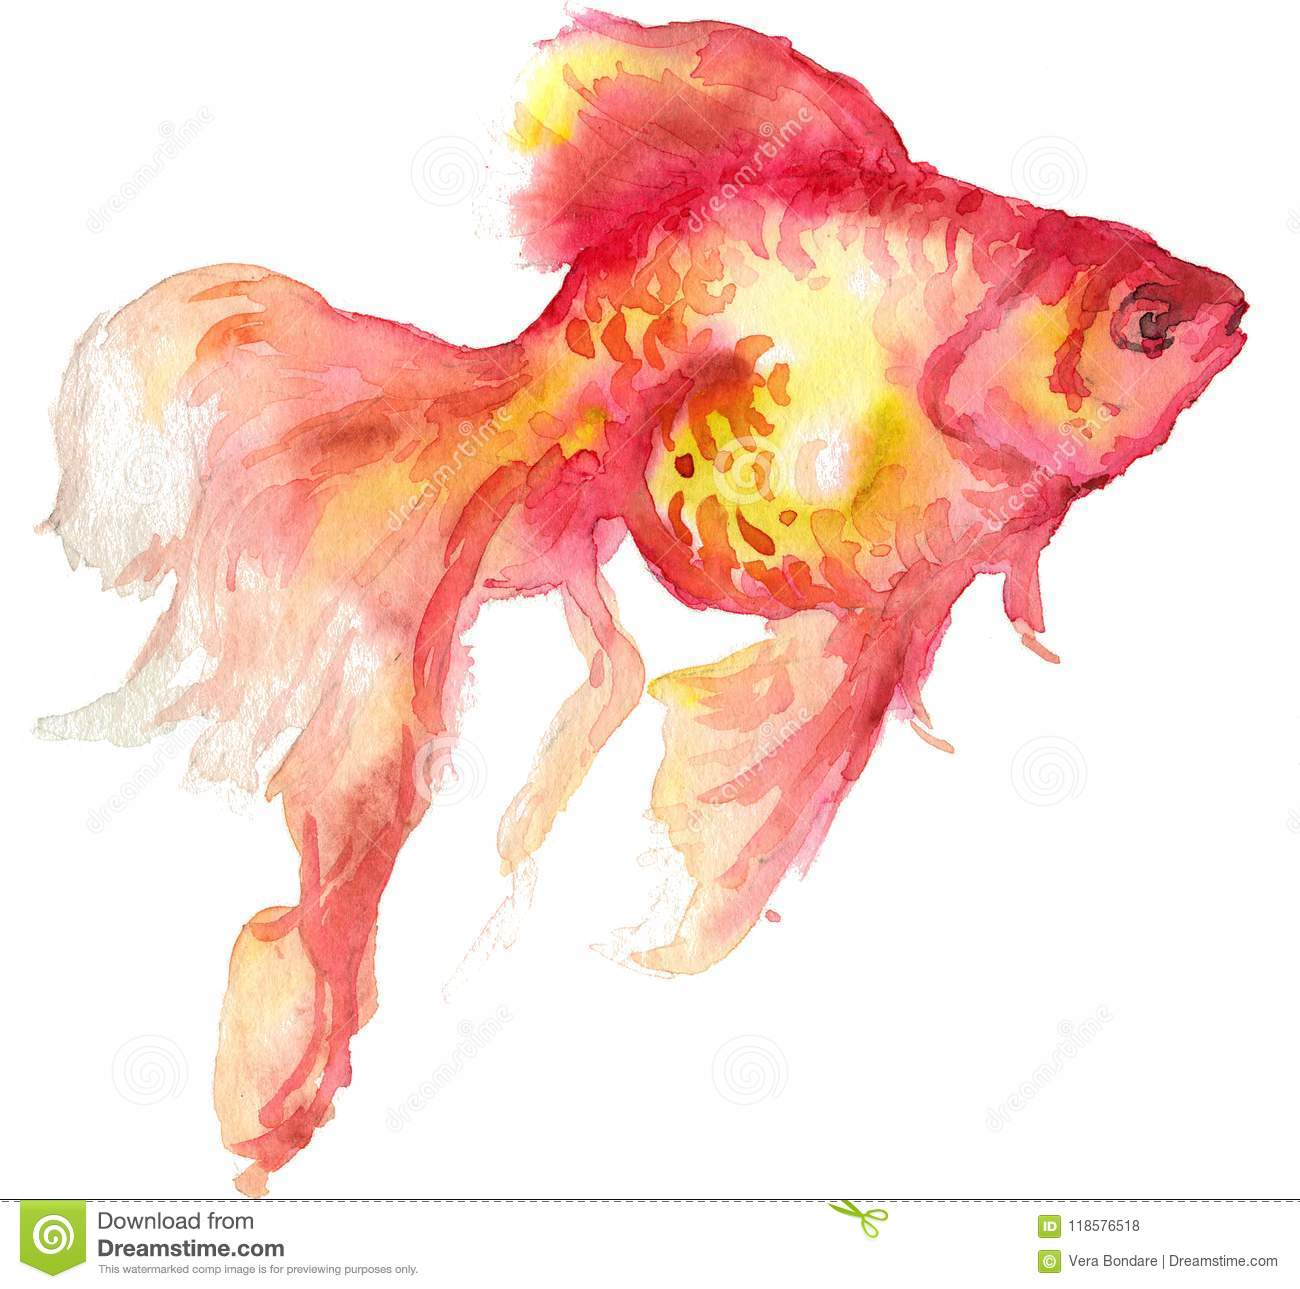 Dessin D Aquarelle D Un Poisson Rouge Illustration Stock